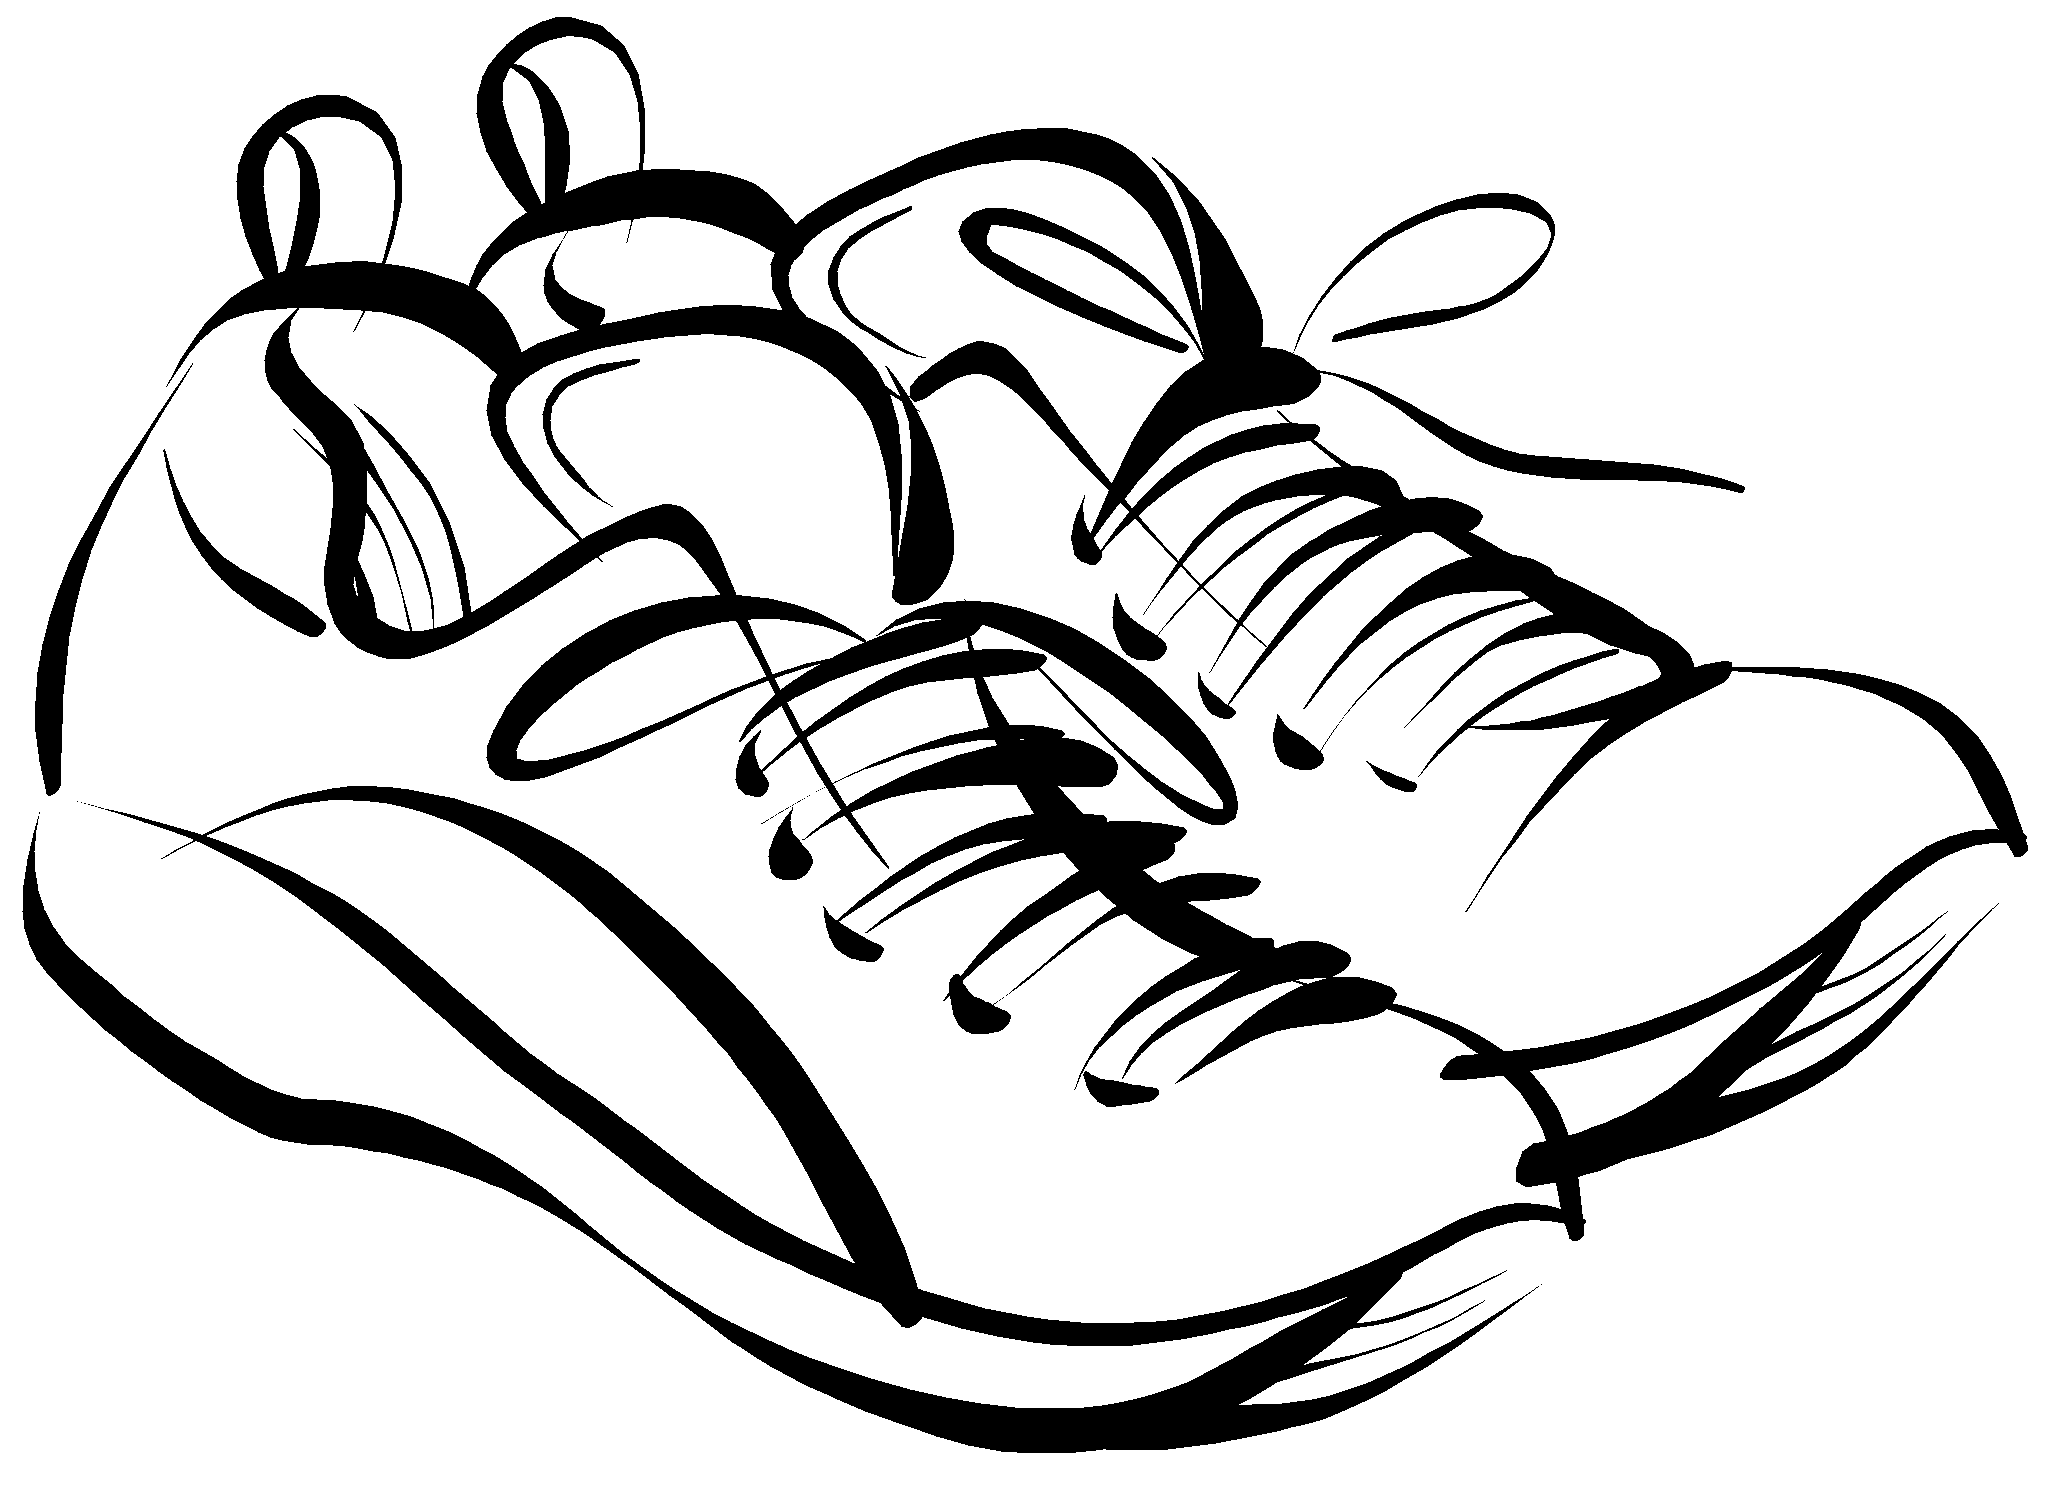 Running Shoes Drawing | Clipart Panda - Free Clipart Images - ClipArt ...: www.clipartbest.com/clipart-ycog8Lx9i